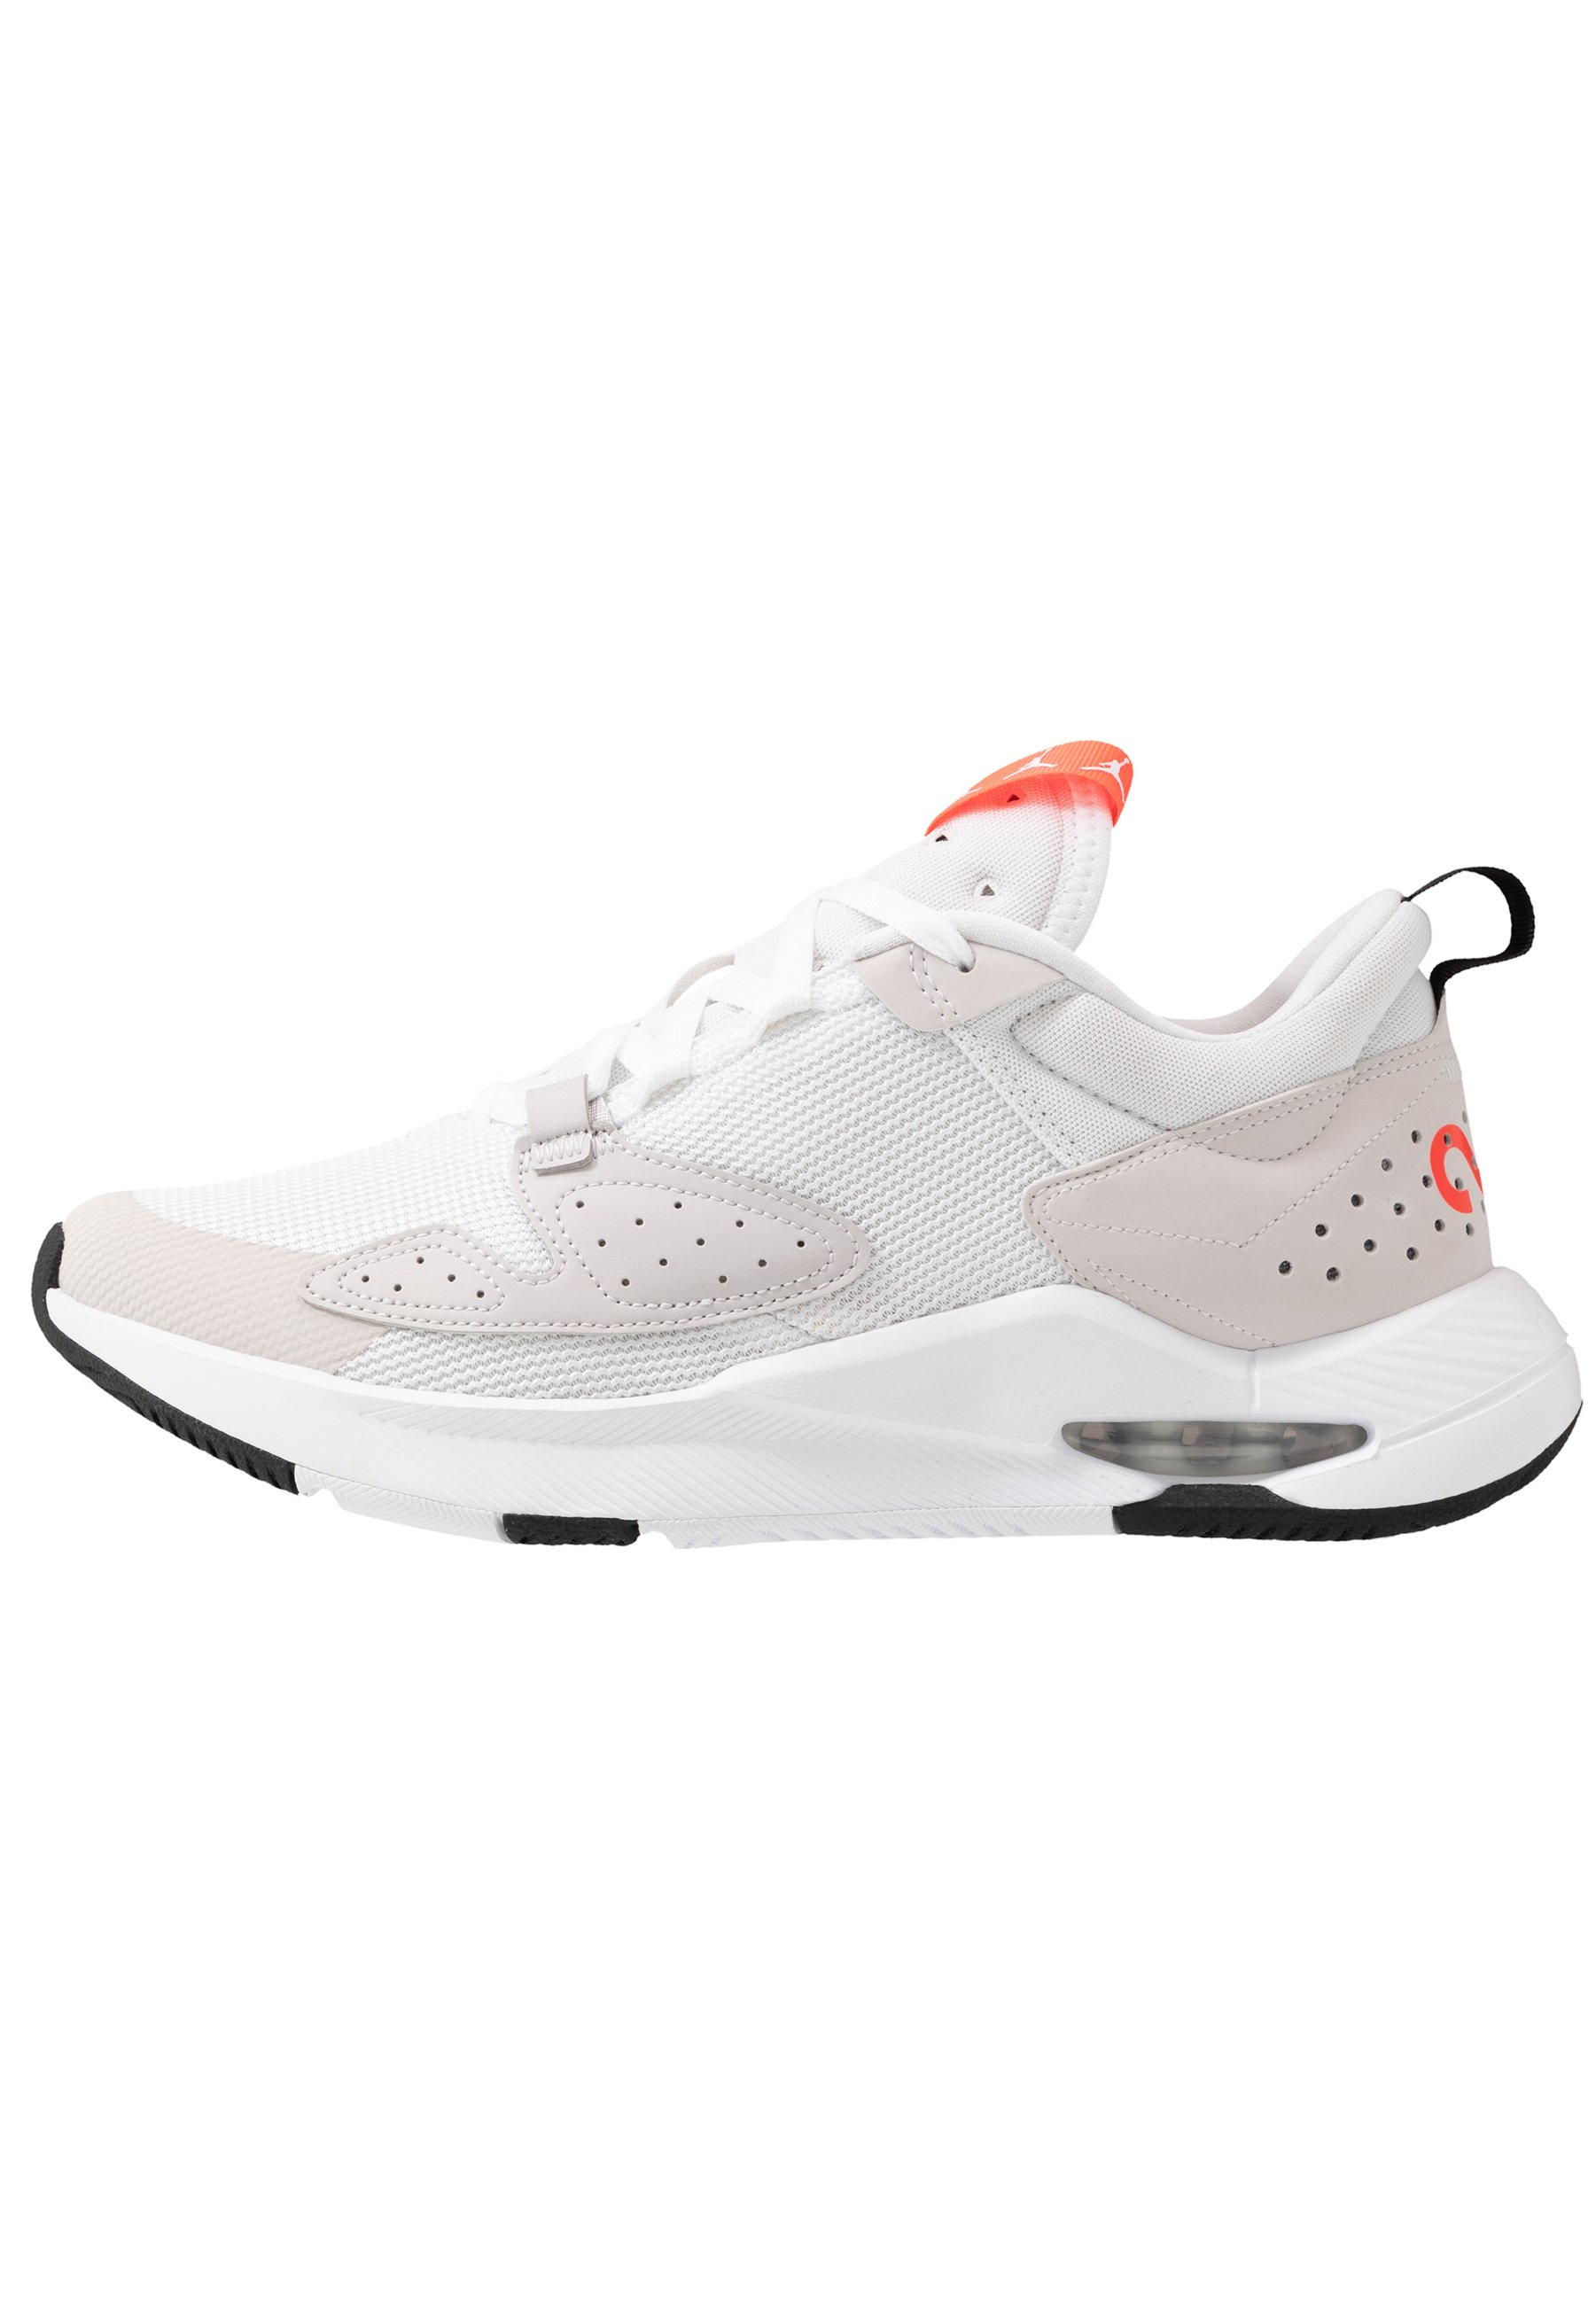 AIR CADENCE Sneaker low whitevast greyblackinfrared